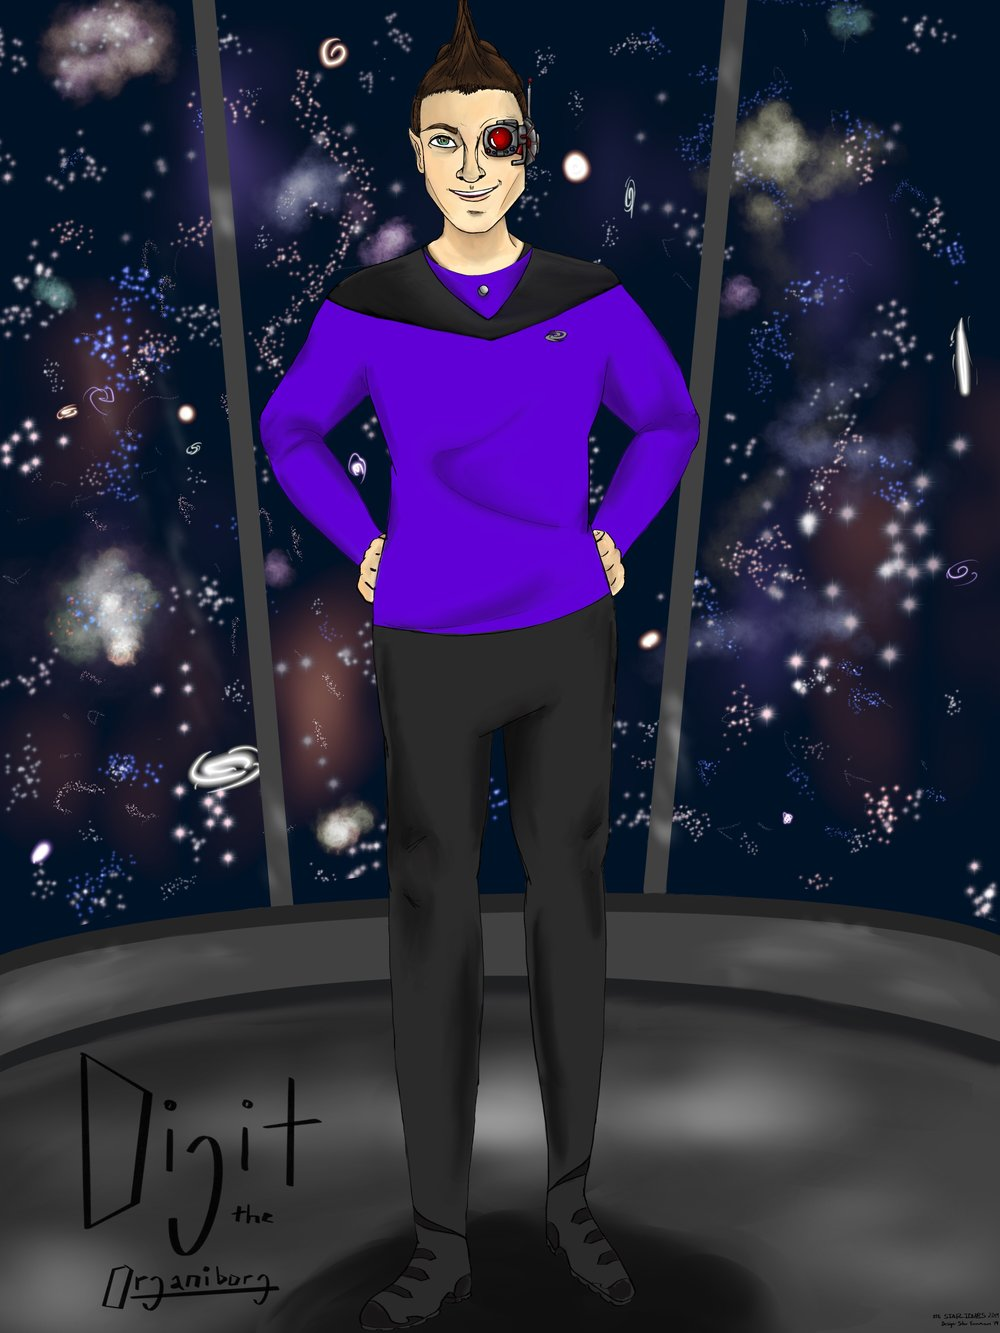 Half Human, Half Cyborg. Equal Parts Heart and Smarts. Digit helps the captain run the ship. She believes that space travel inspires new ways of thinking, imagining, and making friends. - Digit